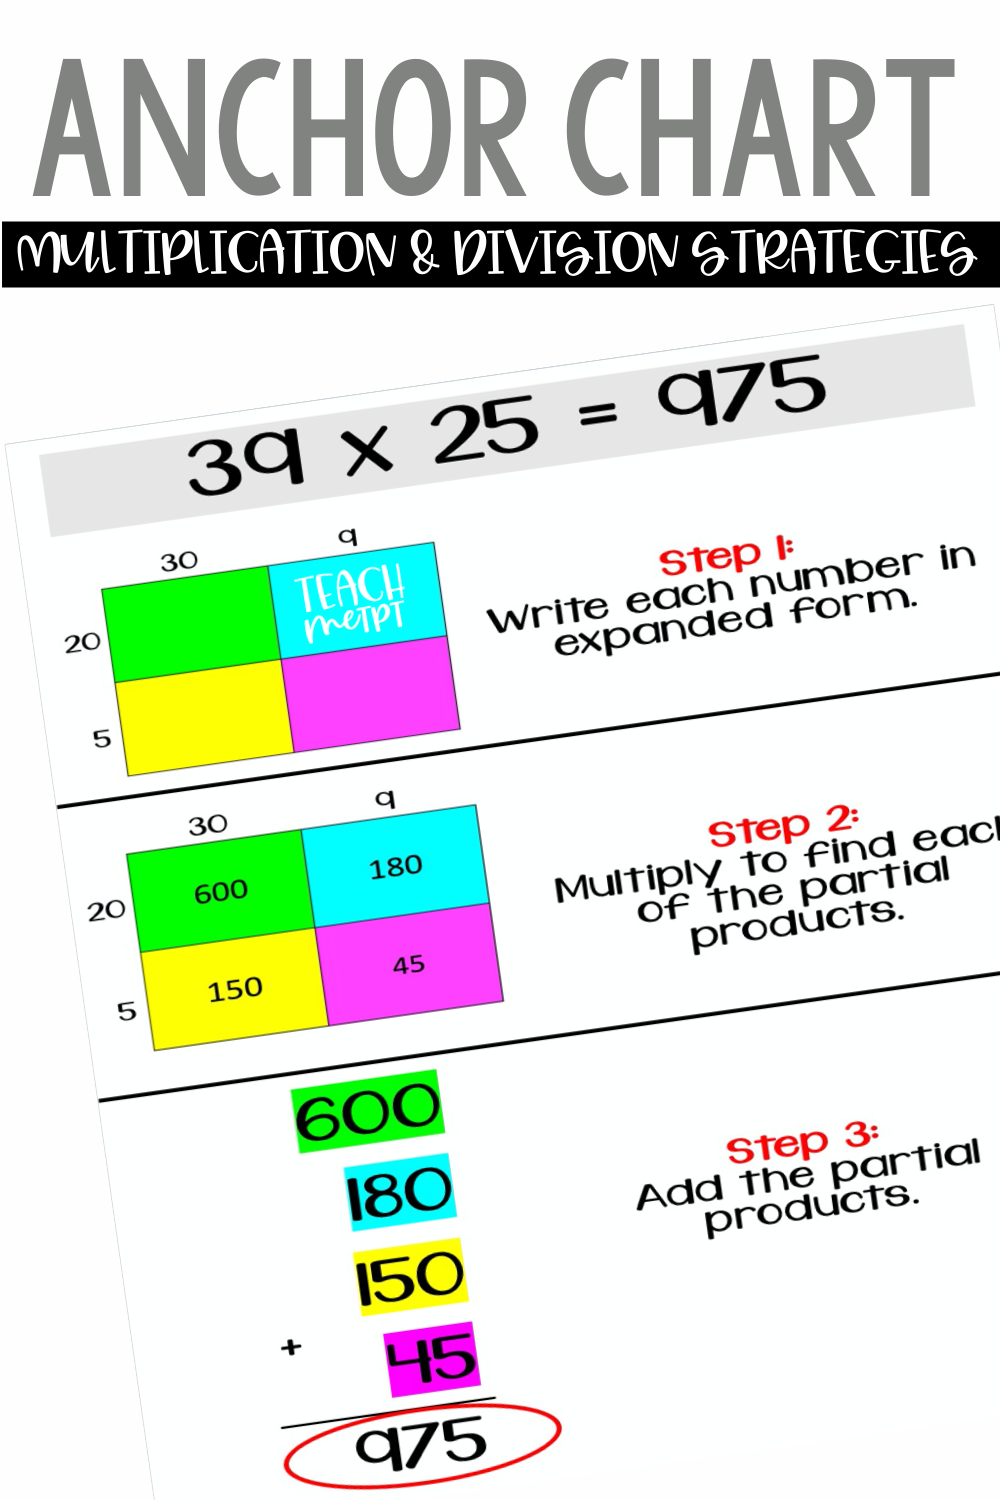 Anchor Chart Cheat Sheet Multiplication Division Strategies In 2020 Anchor Charts Math Instruction Elementary School Resources [ 1500 x 1000 Pixel ]